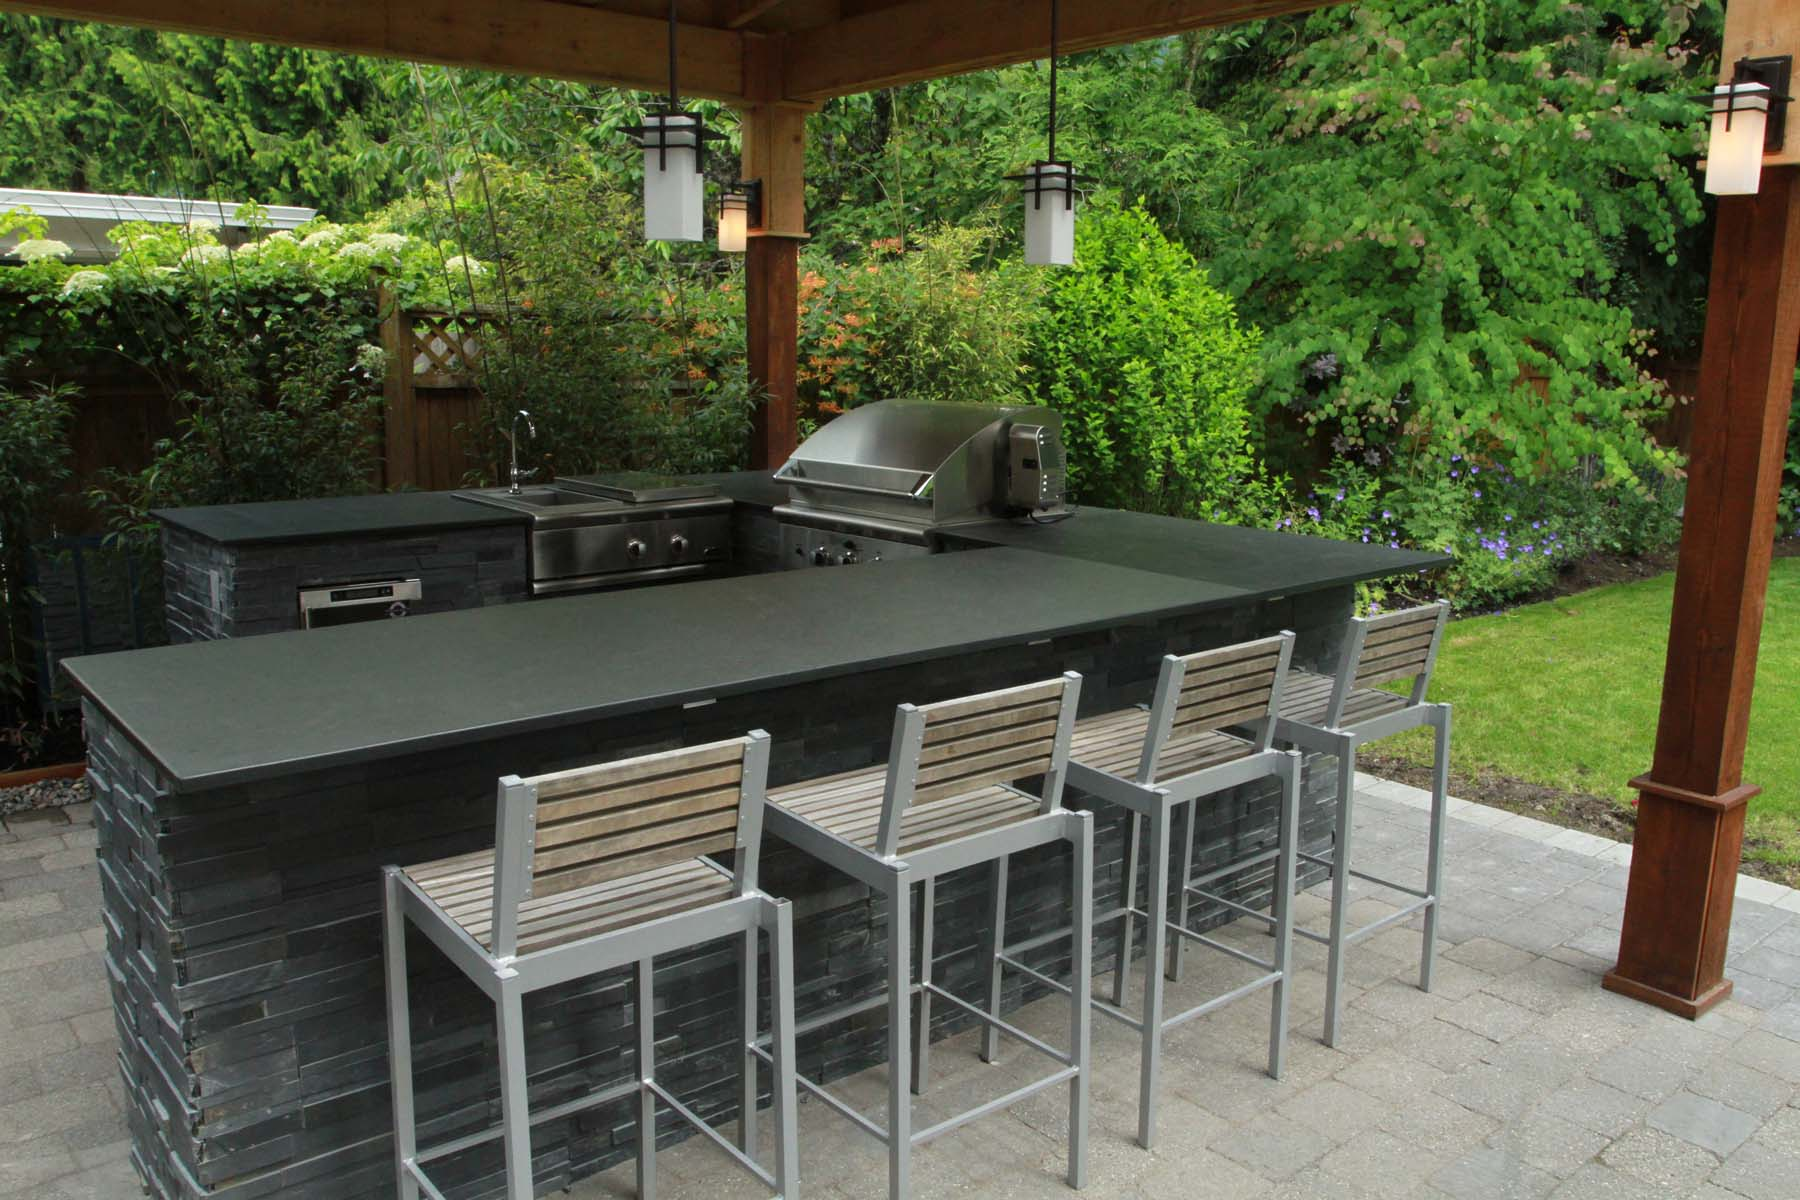 https://gclc.ca/wp-content/uploads/2015/08/Outdoor-Kitchens.jpg